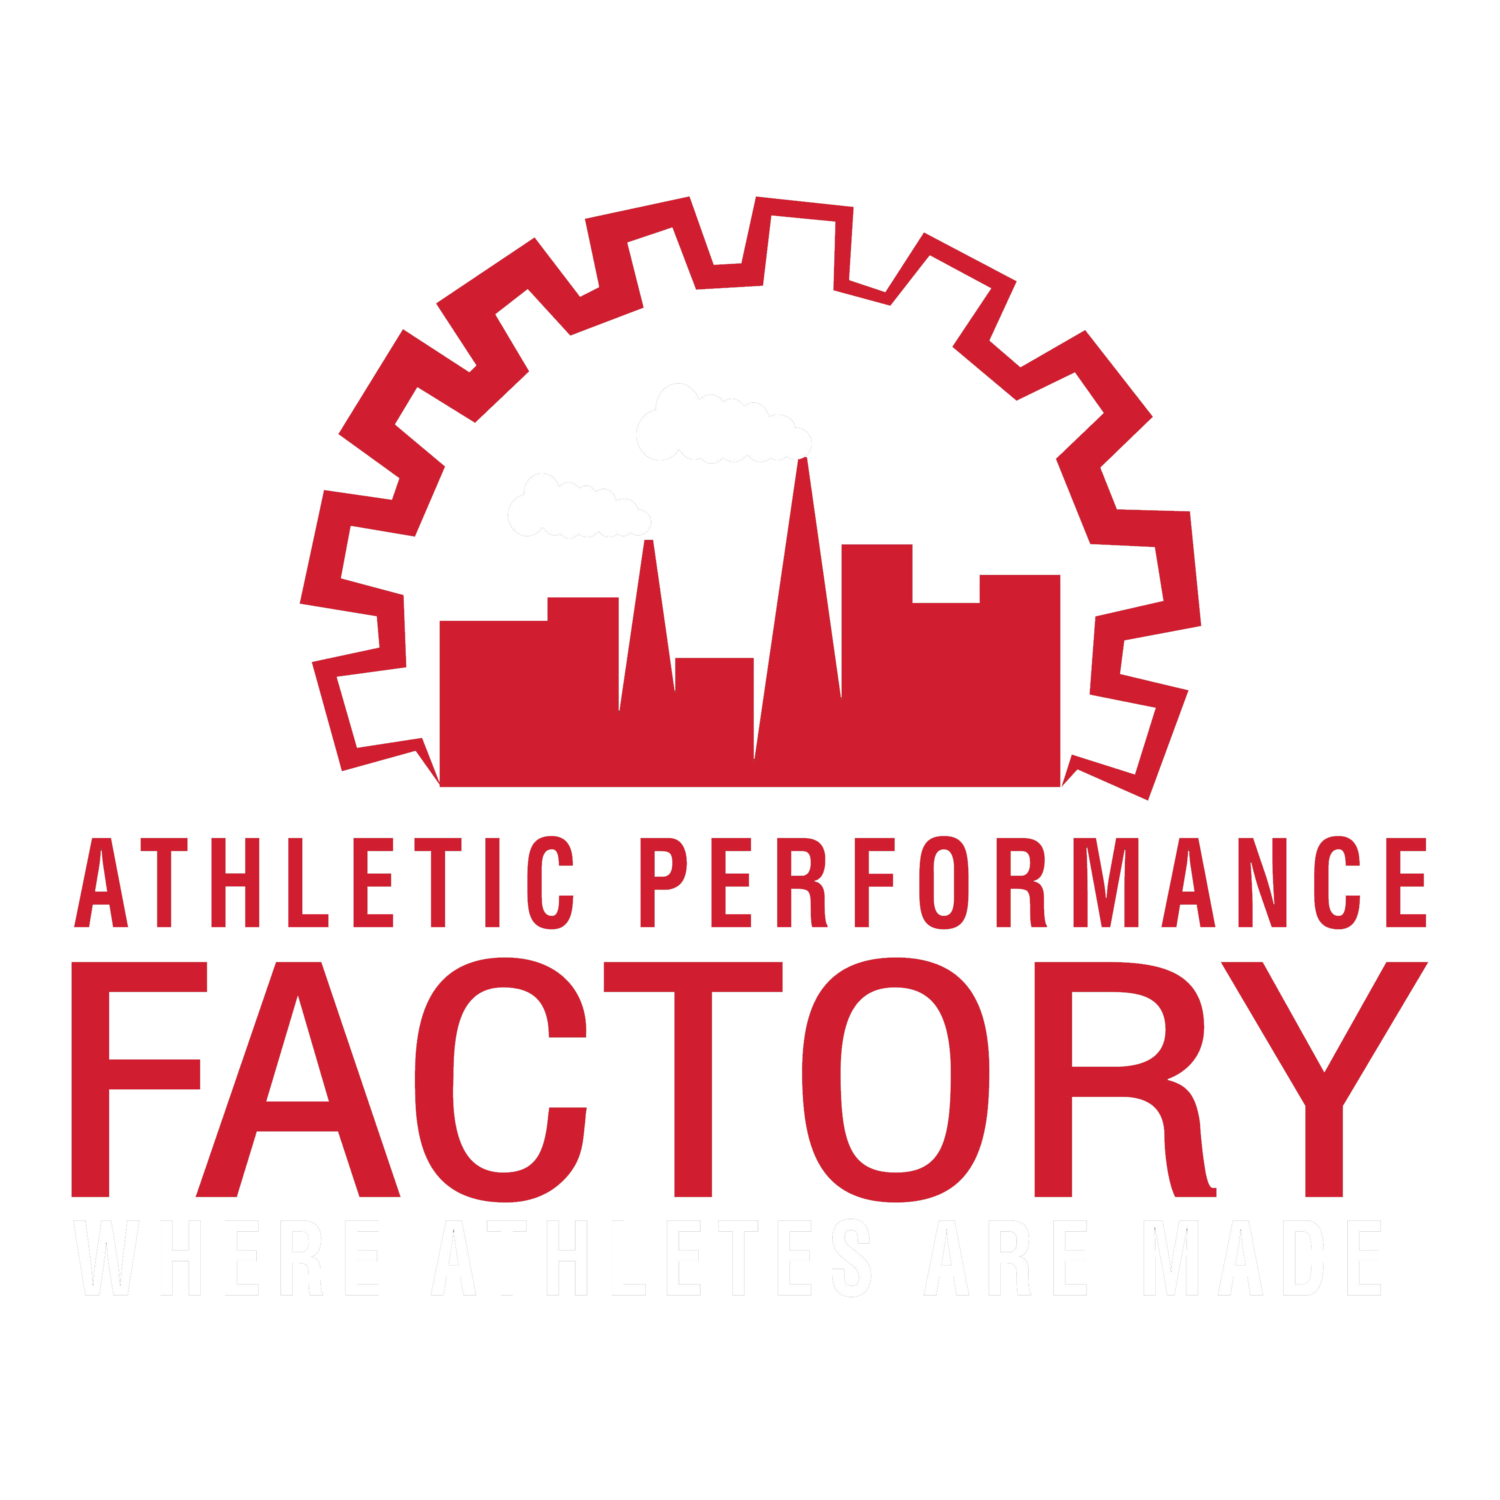 Athletic Performance Factory